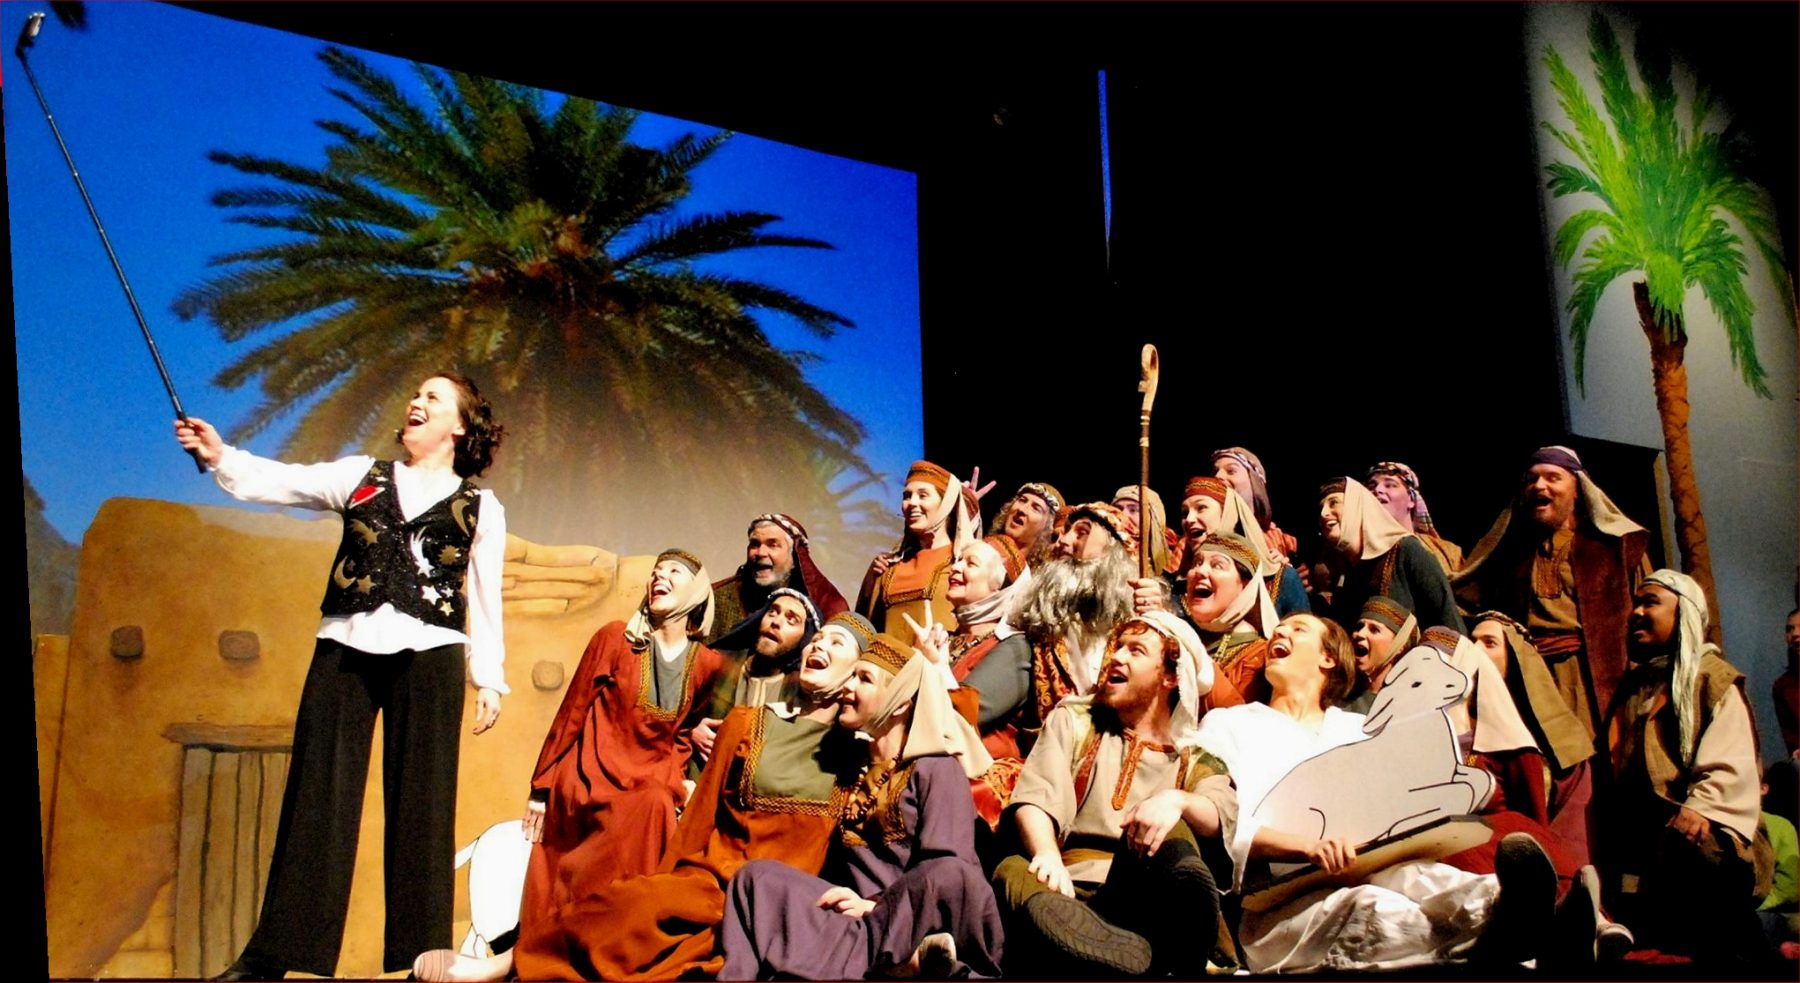 joseph and the amazing technicolor dreamcoat essay The levoy theatre, home of the off broad street players theatre company, announces auditions for the musical joseph and the amazing technicolor dreamcoat.